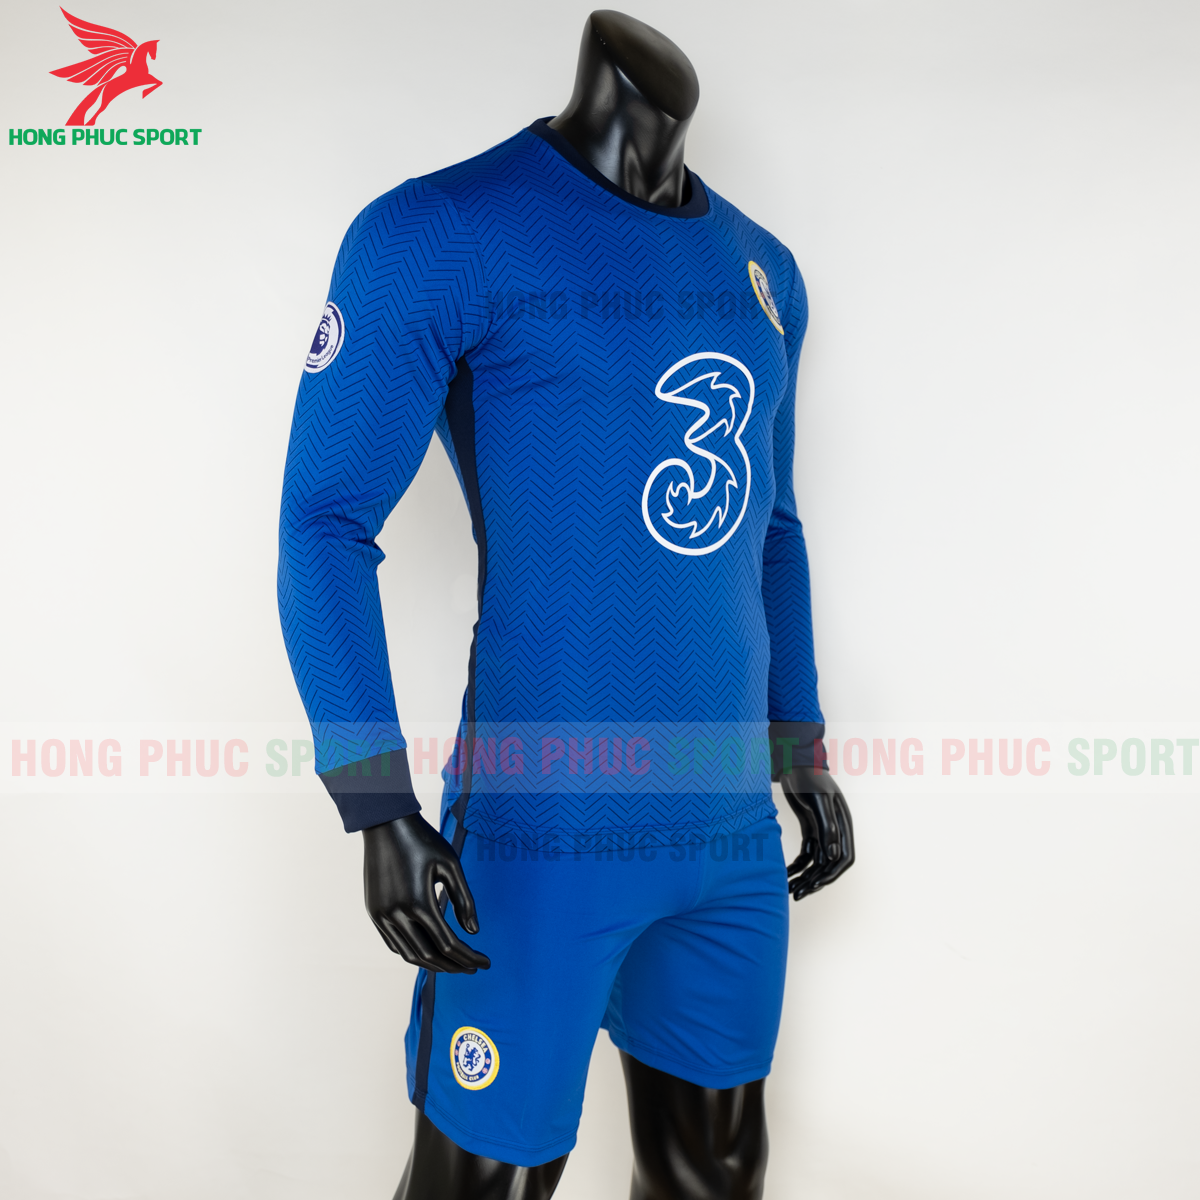 https://cdn.hongphucsport.com/unsafe/s4.shopbay.vn/files/285/ao-dai-tay-chelsea-2020-san-nha-4-5f8fbca51a1f0.png